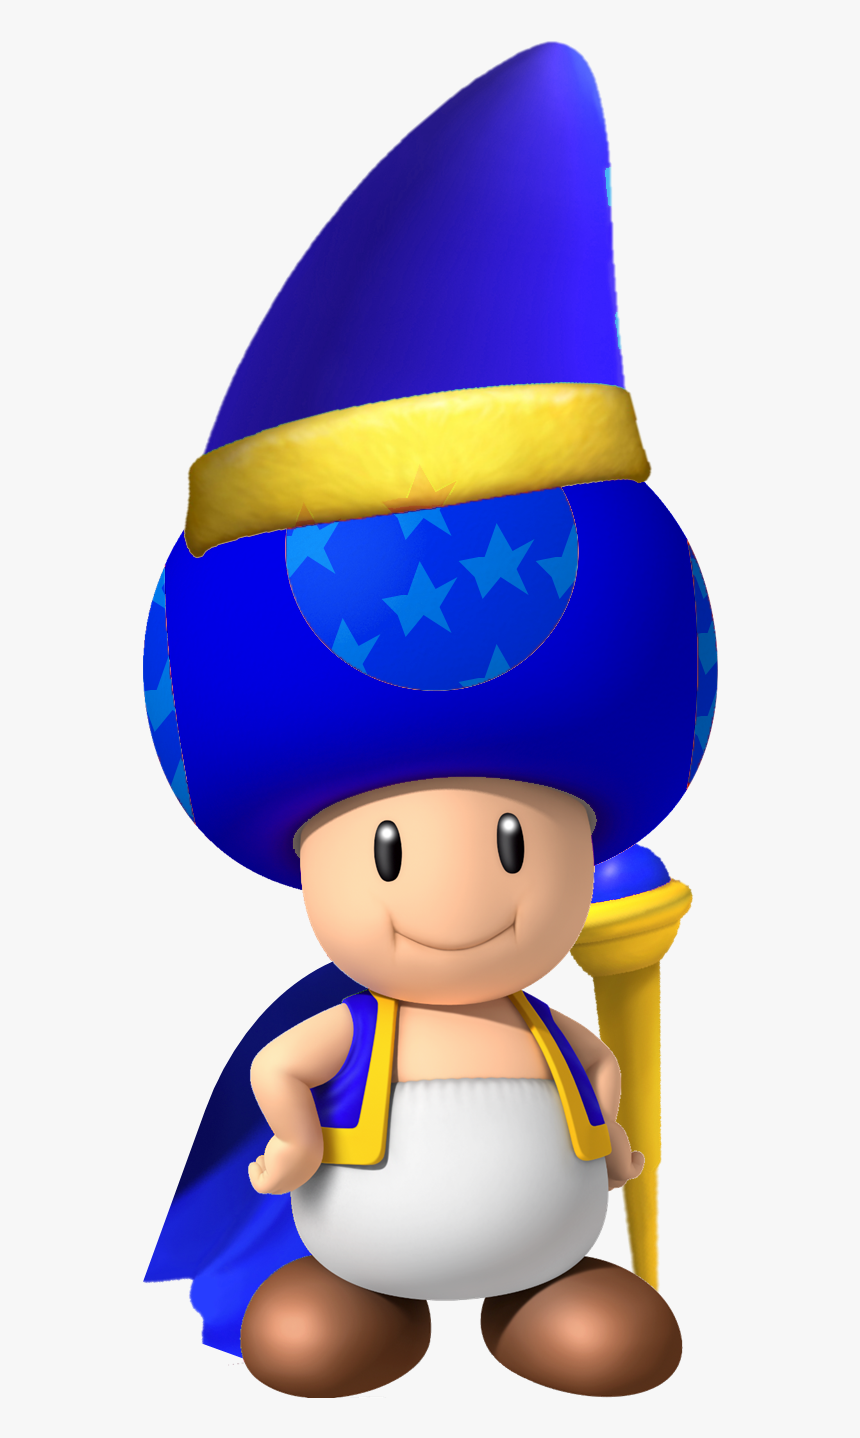 Blue Shell Mario Kart Blue Toad From Mario Hd Png